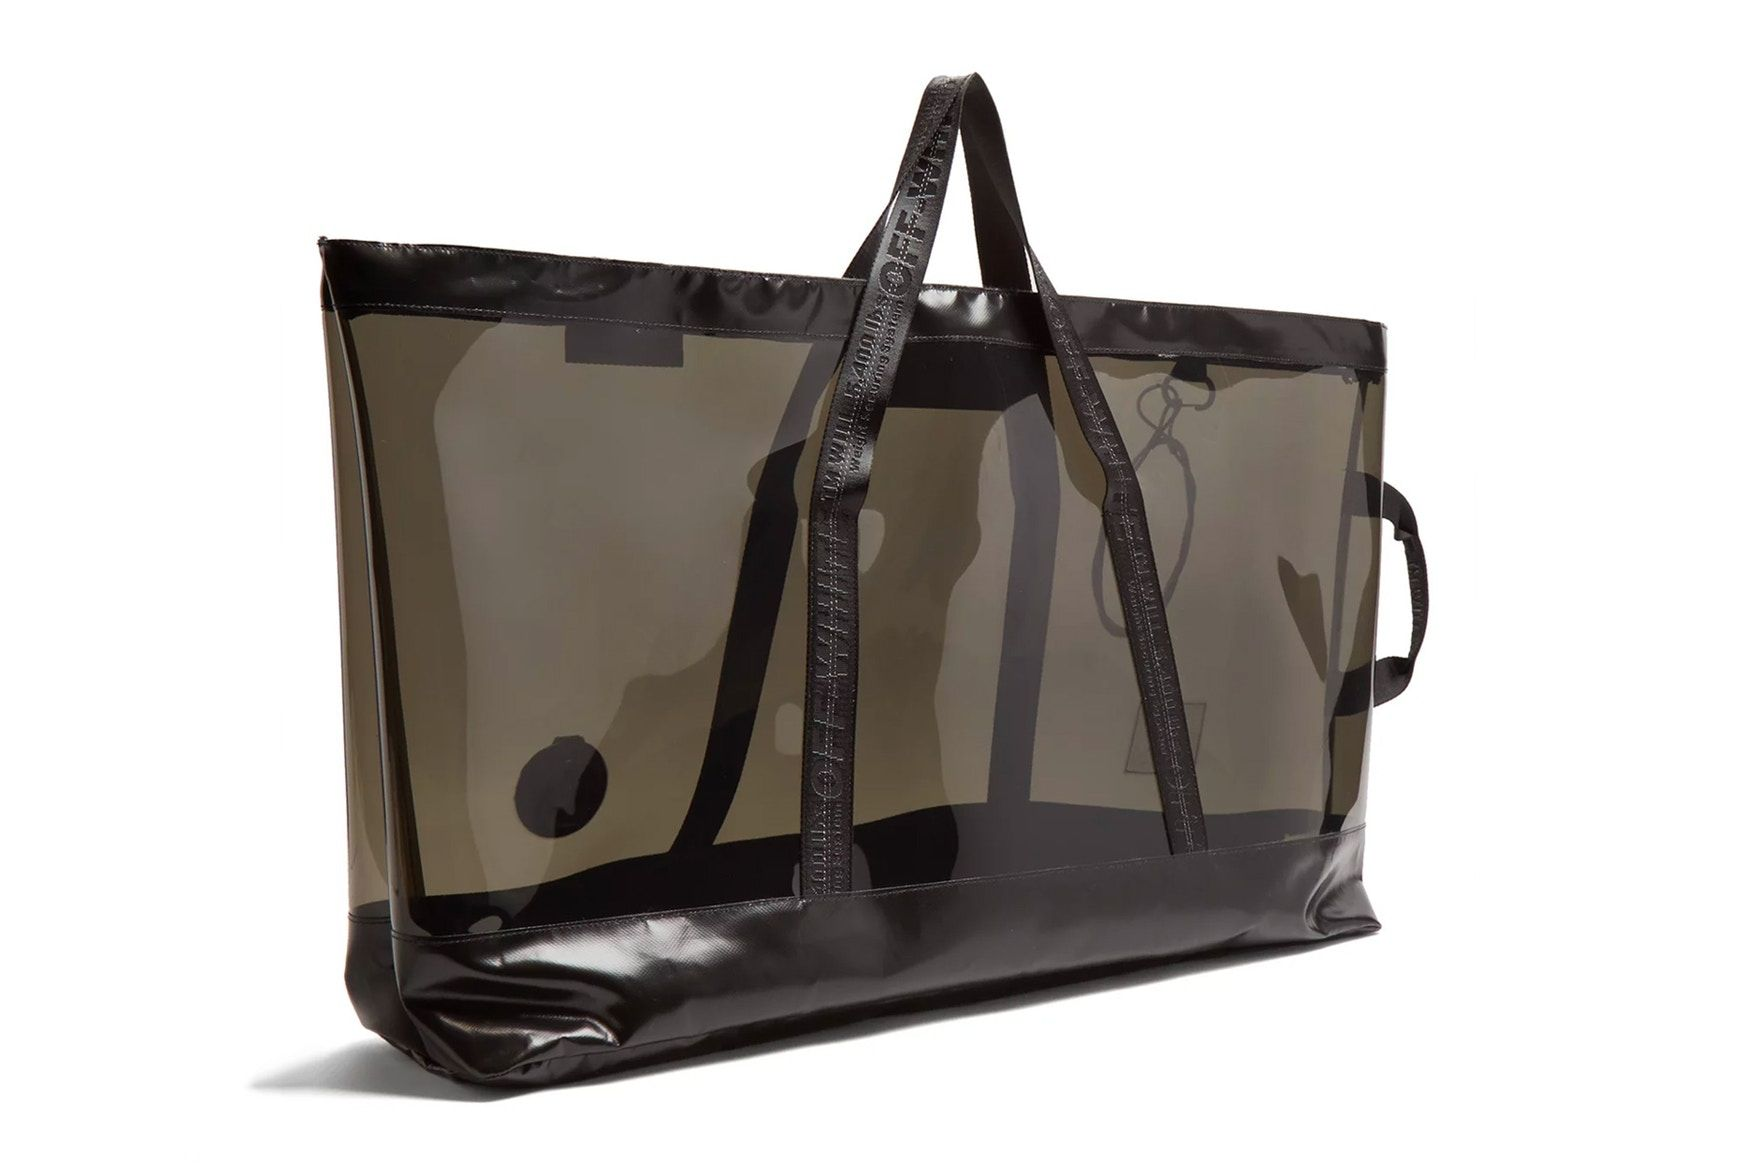 69dfc5856 Off-White™ Black PVC Oversized Tote Bag Translucent See Through Transparent  Plastic Large unisex mens womens where to buy matchesfashion.com